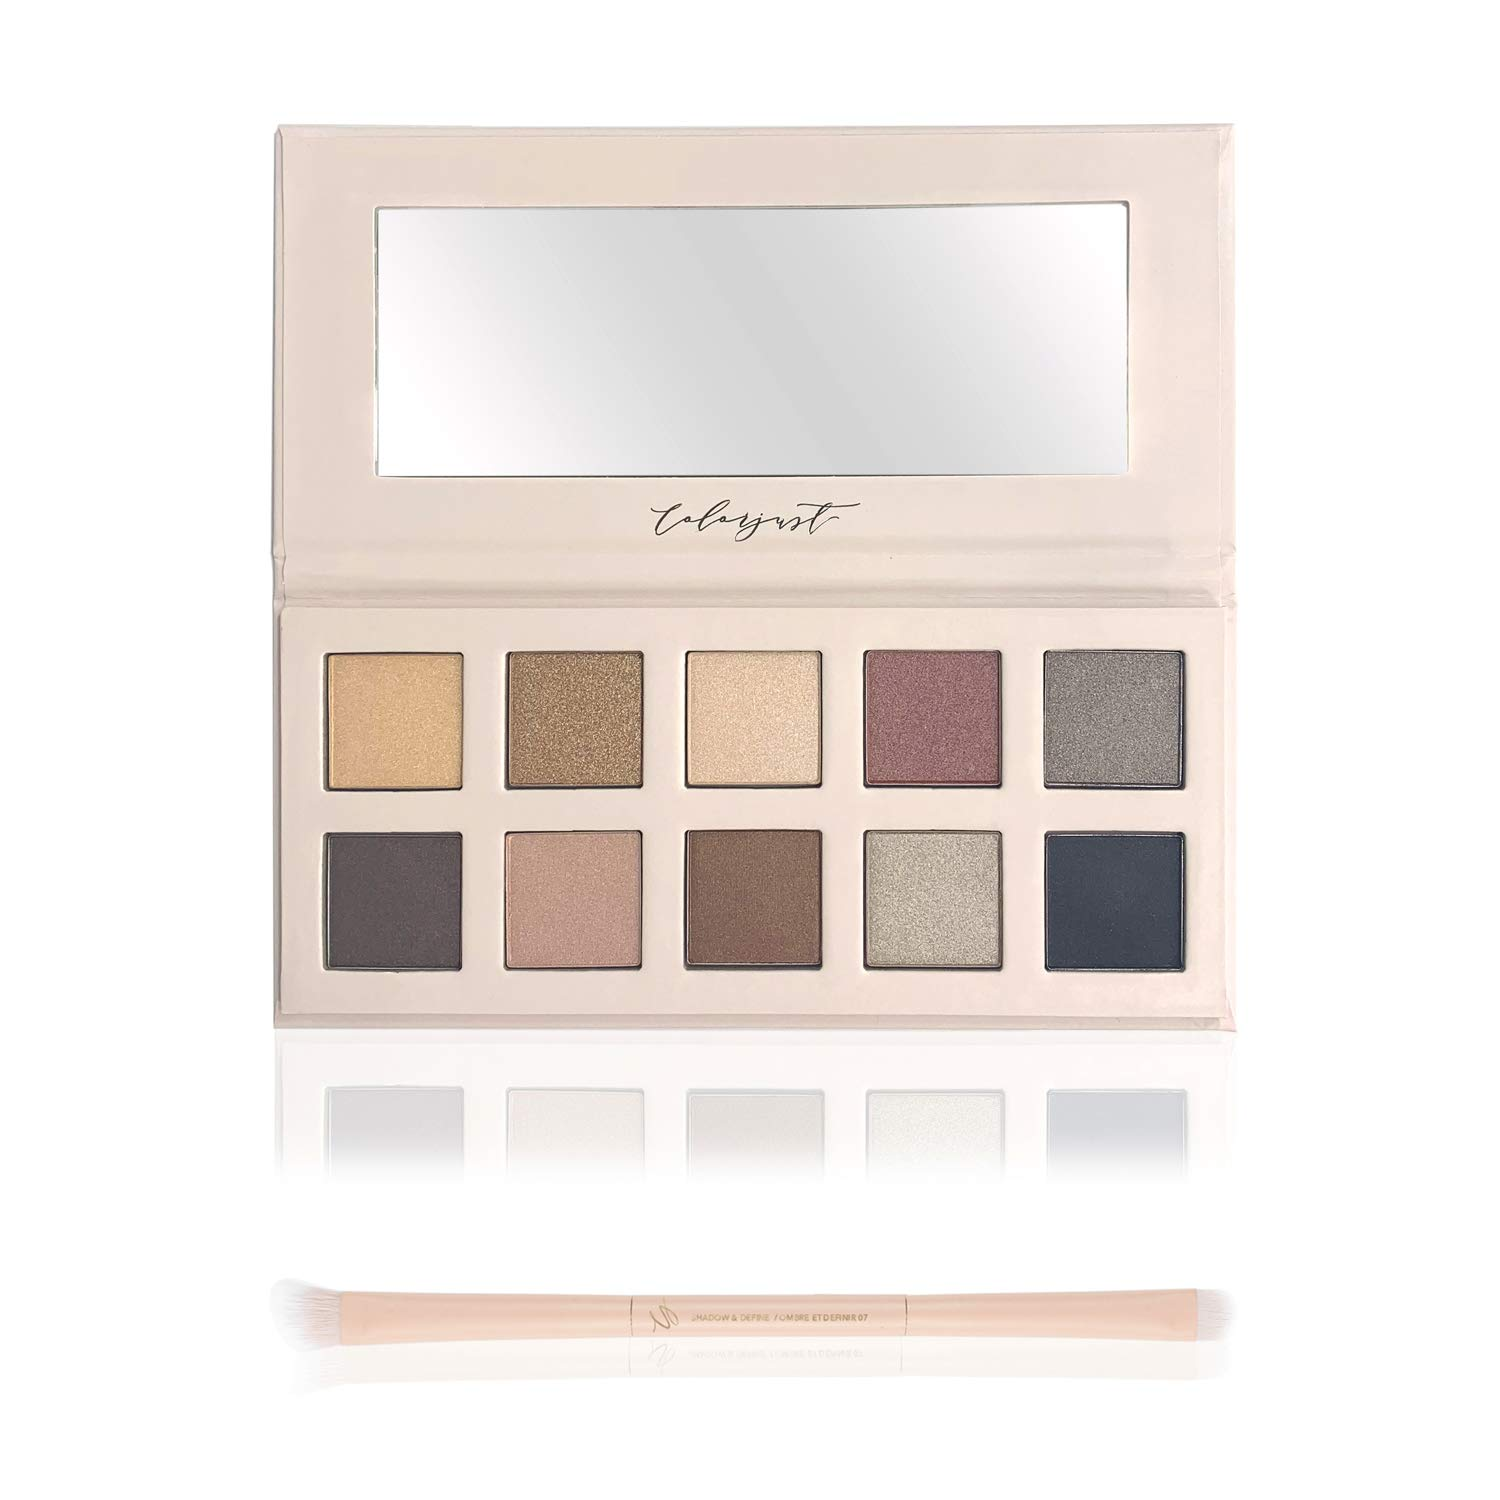 Colorjust Shadow Shade Shimmer Eyeshadow Palette, 10 Shimmer Shadows & Dual-Sided Application Brush for Wet & Dry Application